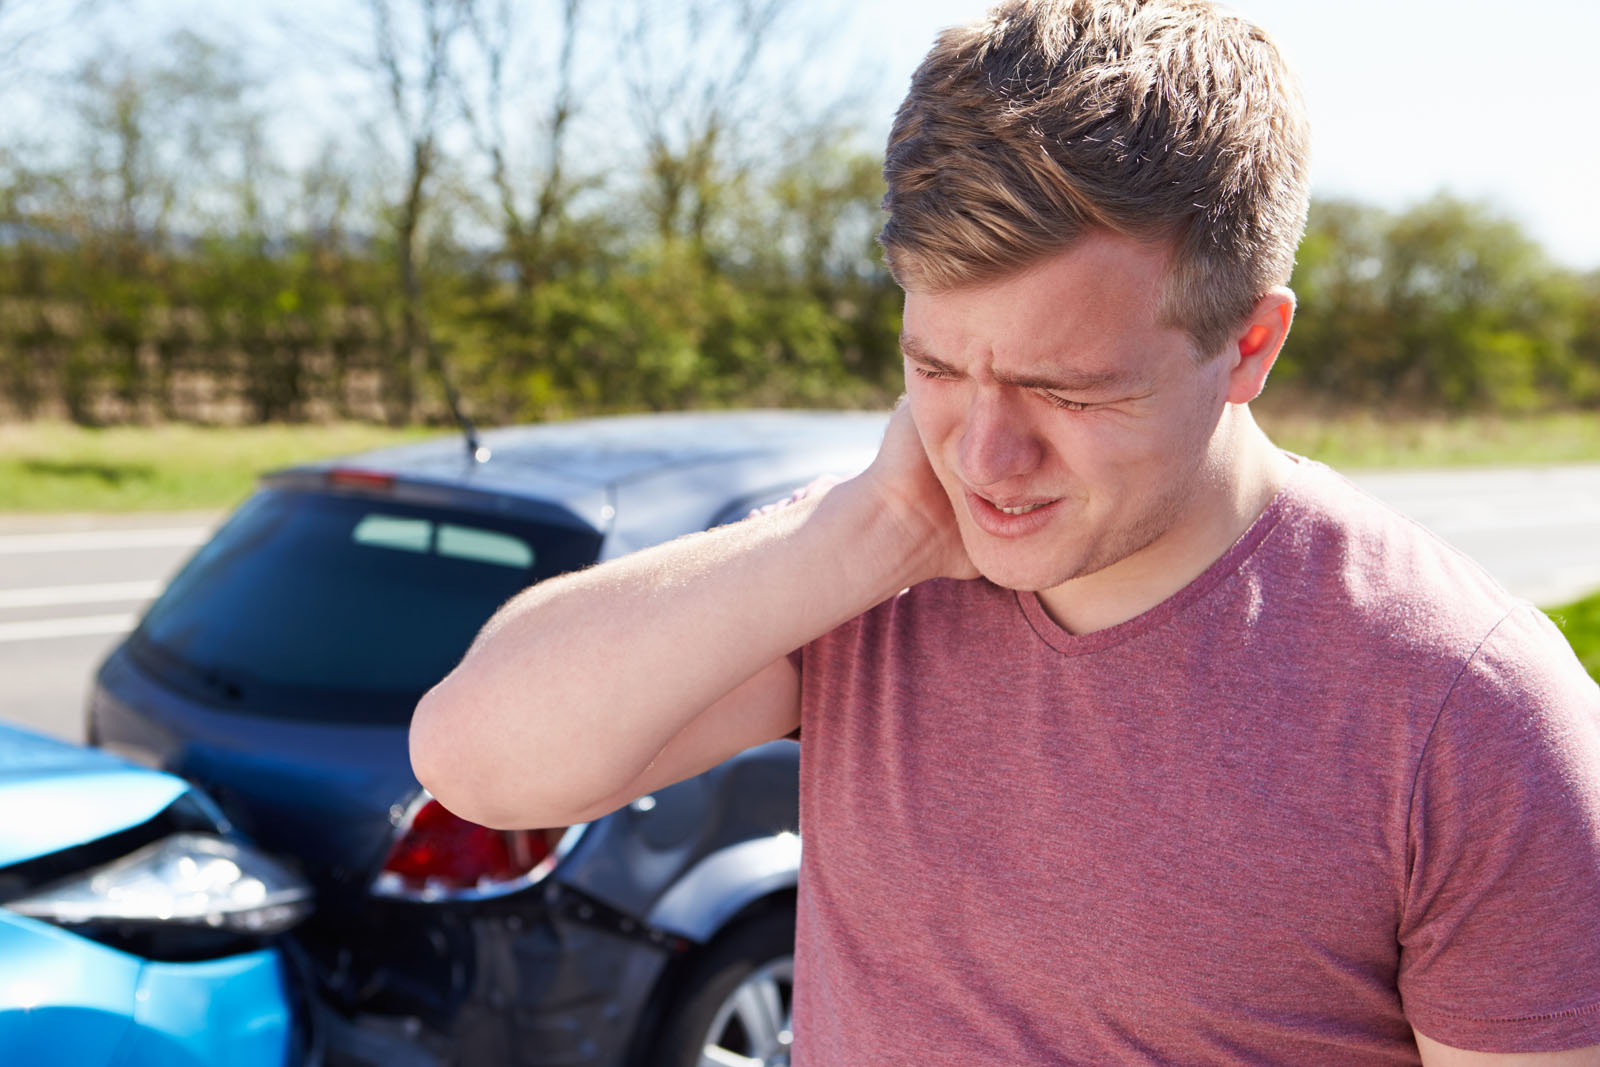 man holding neck from pain from whiplash after an auto accident